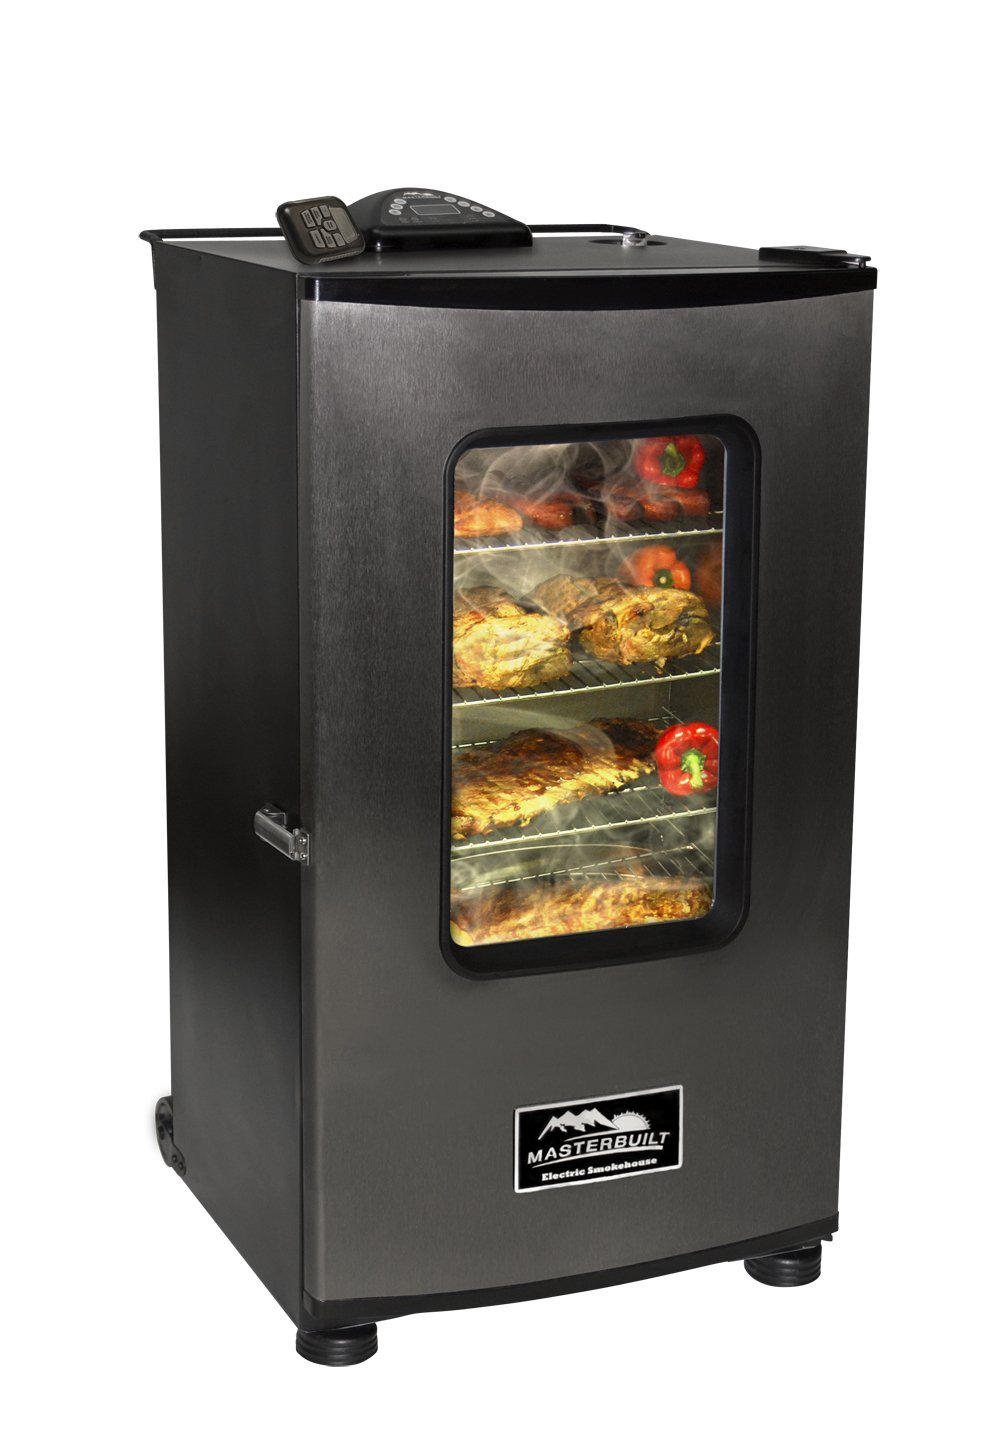 Masterbuilt best electric smoker under 300